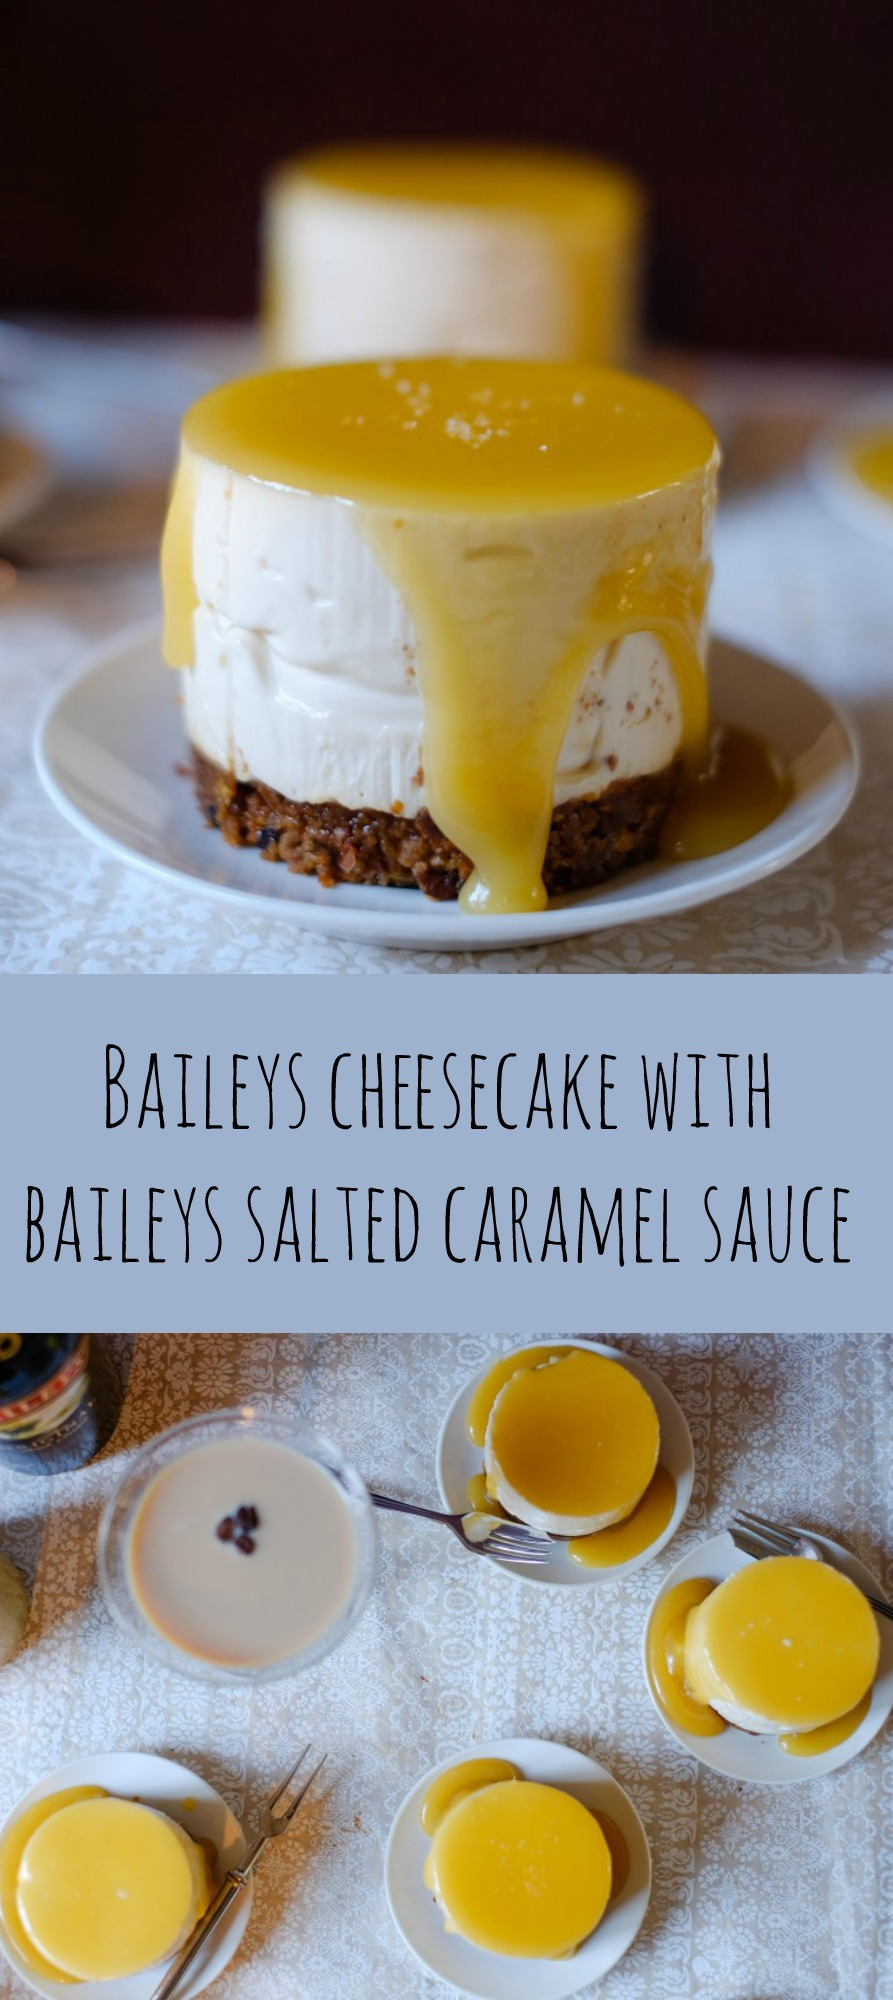 Baileys Cheesecake with Baileys Salted Caramel Sauce | Patisserie Makes Perfect